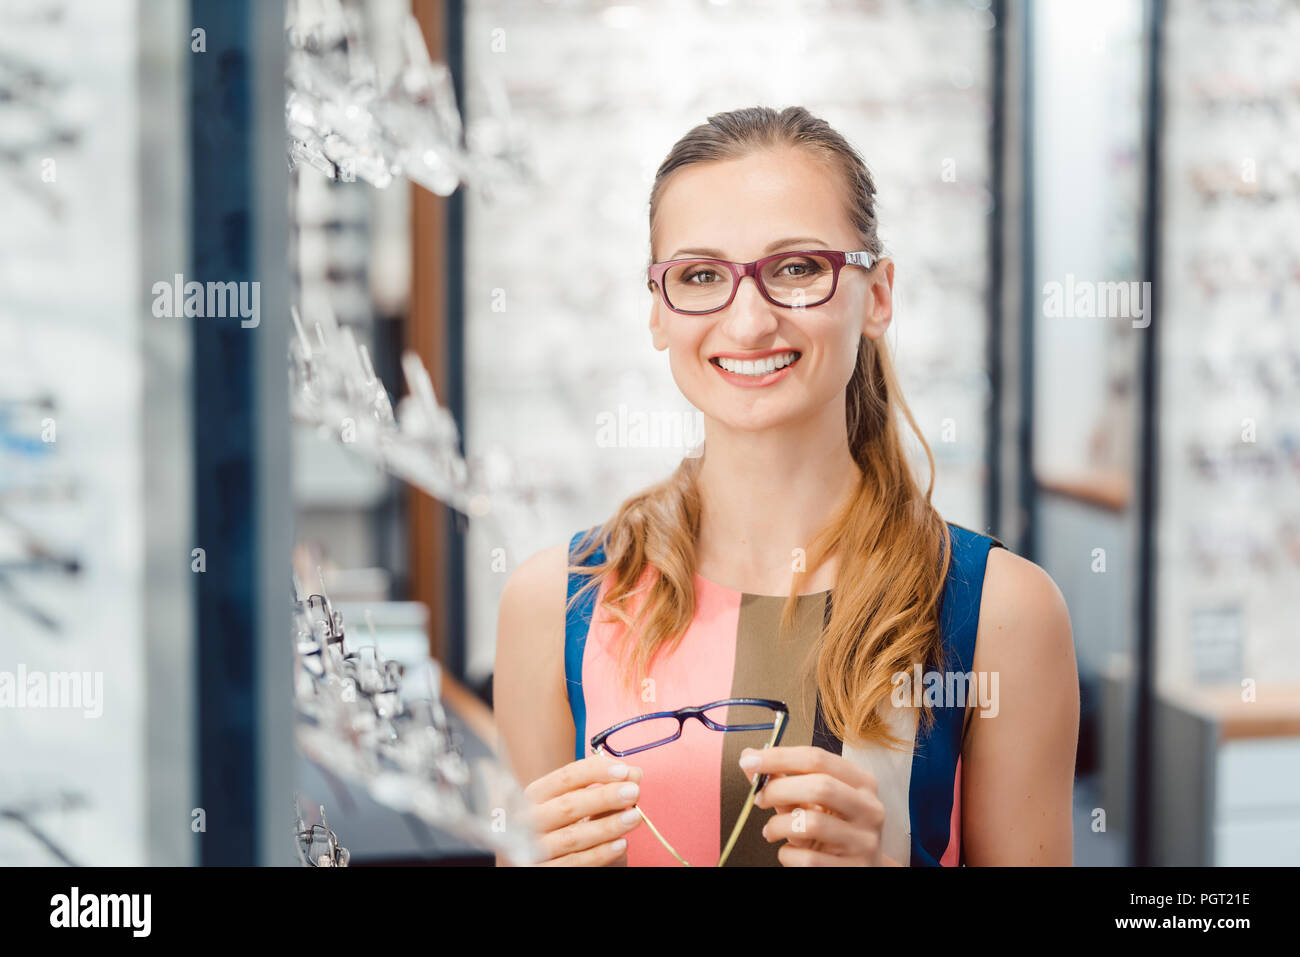 Woman being satisfied with the new eyeglasses she bought in the store - Stock Image